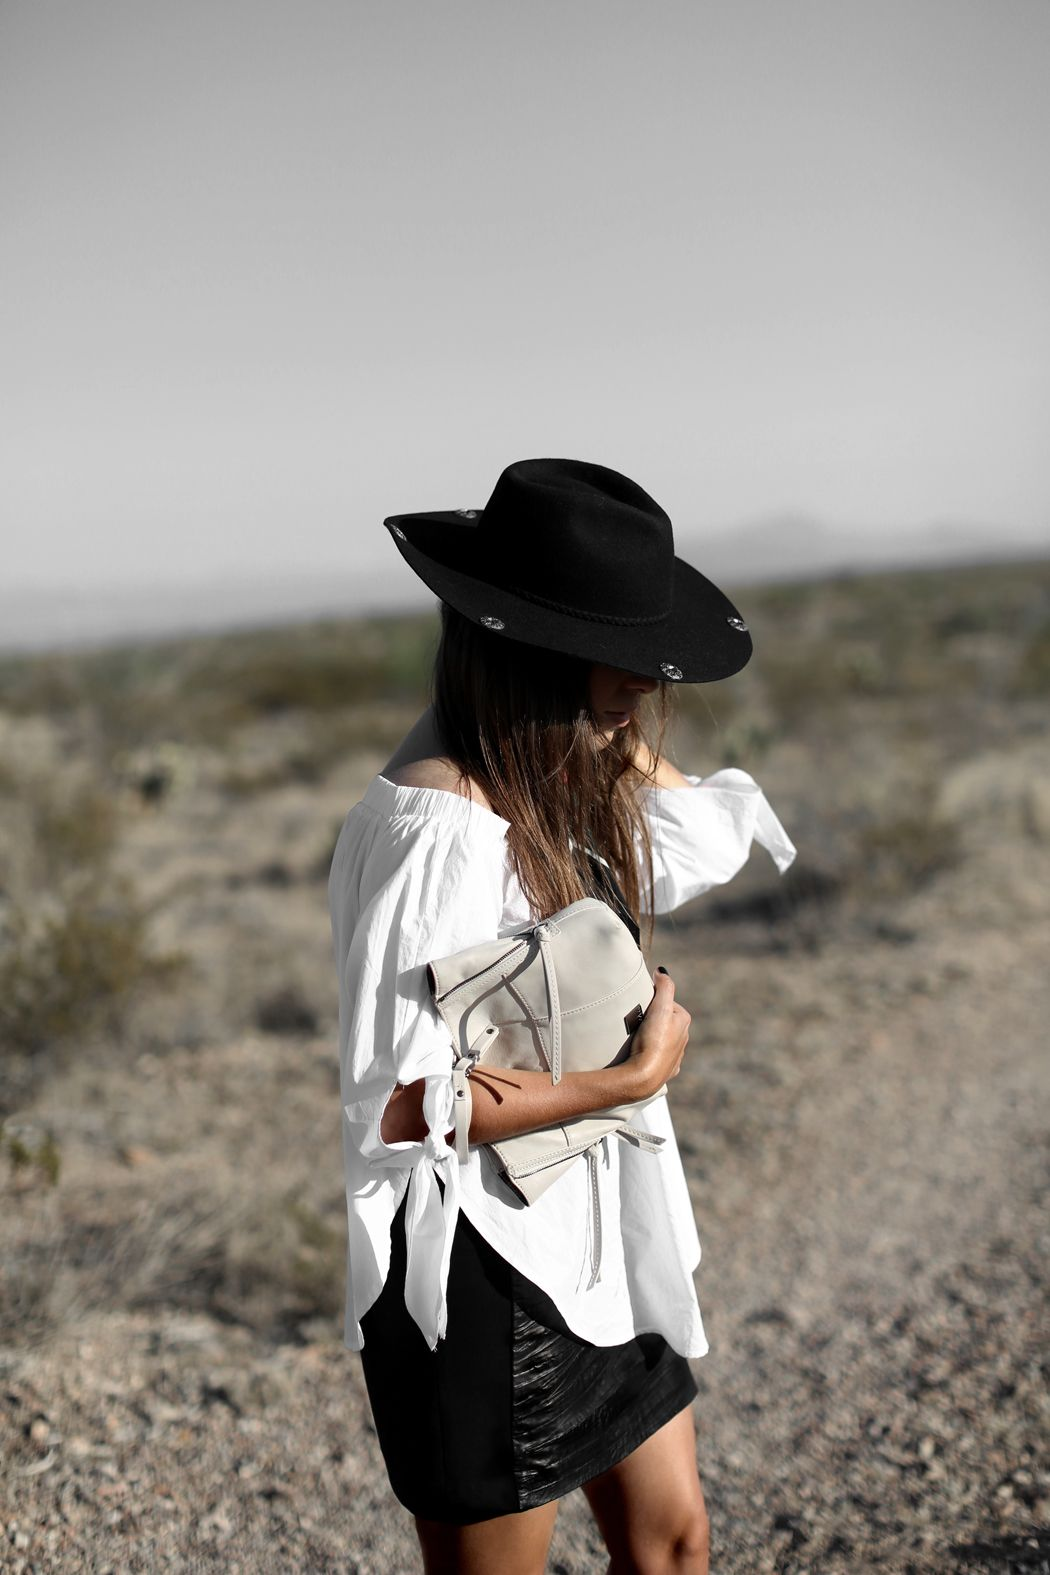 THE TRANS PECOS DESERT | Fiona from thedashingrider.com wears a white White Off Shoulder Blouse, a Black Studded Leather Skirt from Ikks, a Western Hat from Mango and Loeffler Randall Espadrilles #ootd #whatiwore #petite #texas